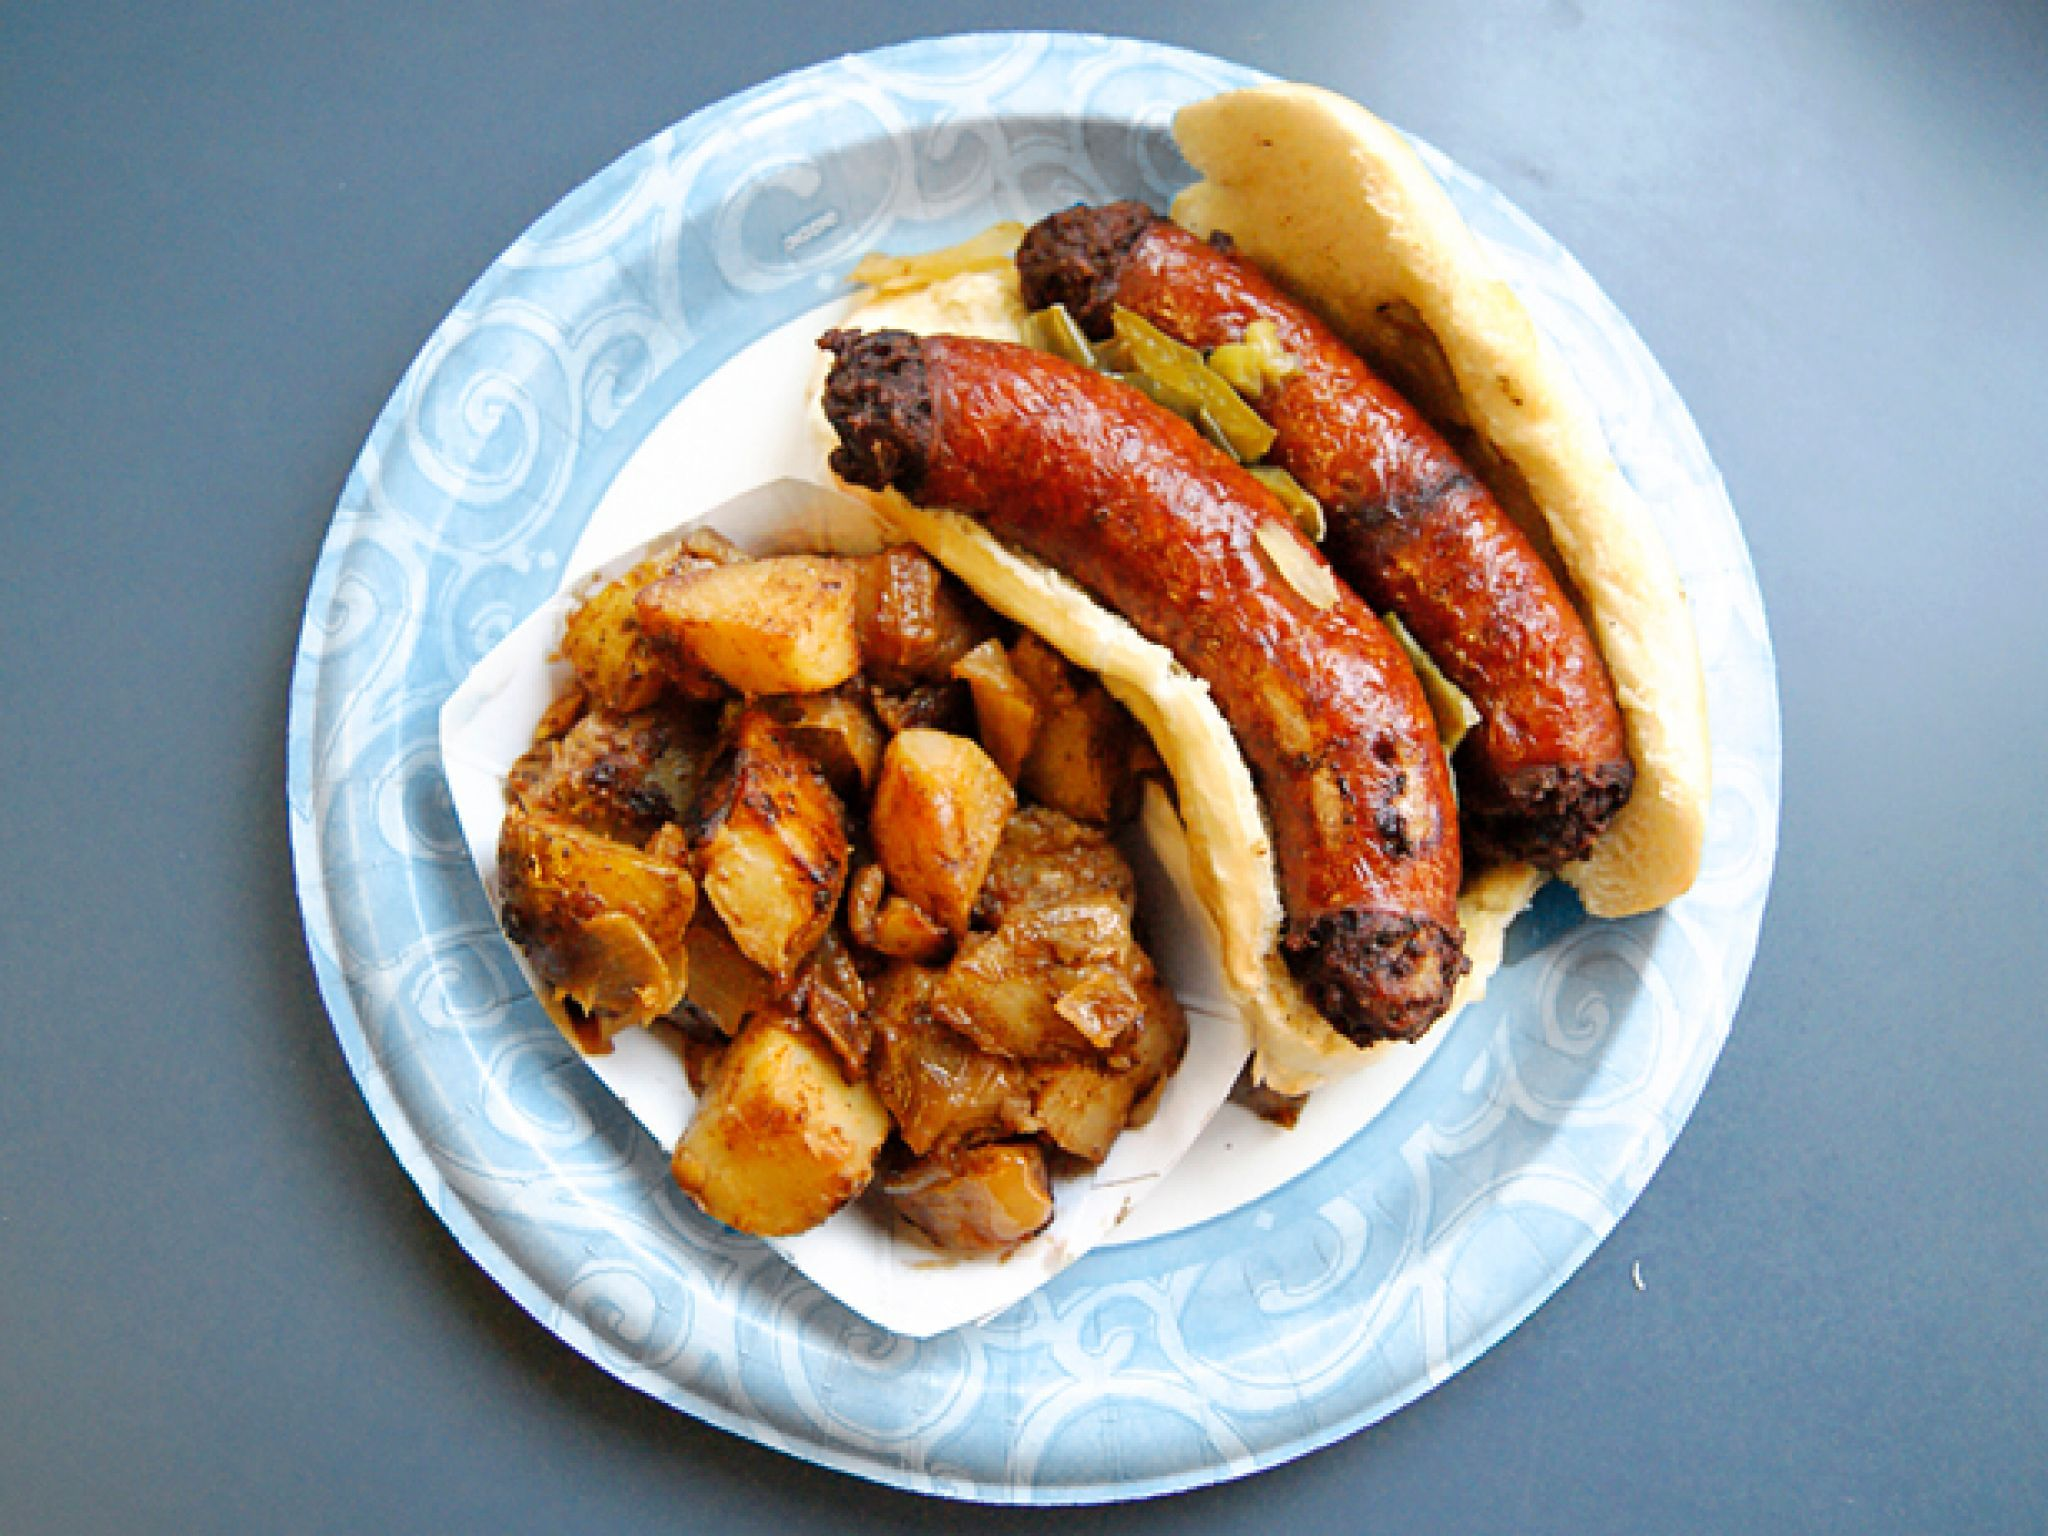 Sausage Sandwich From Helen Rsquo S Famous Sausage House Smyrna Delaware Truckers Love This Roadside Eatery For Its Hou Food Network Recipes Food Breakfast